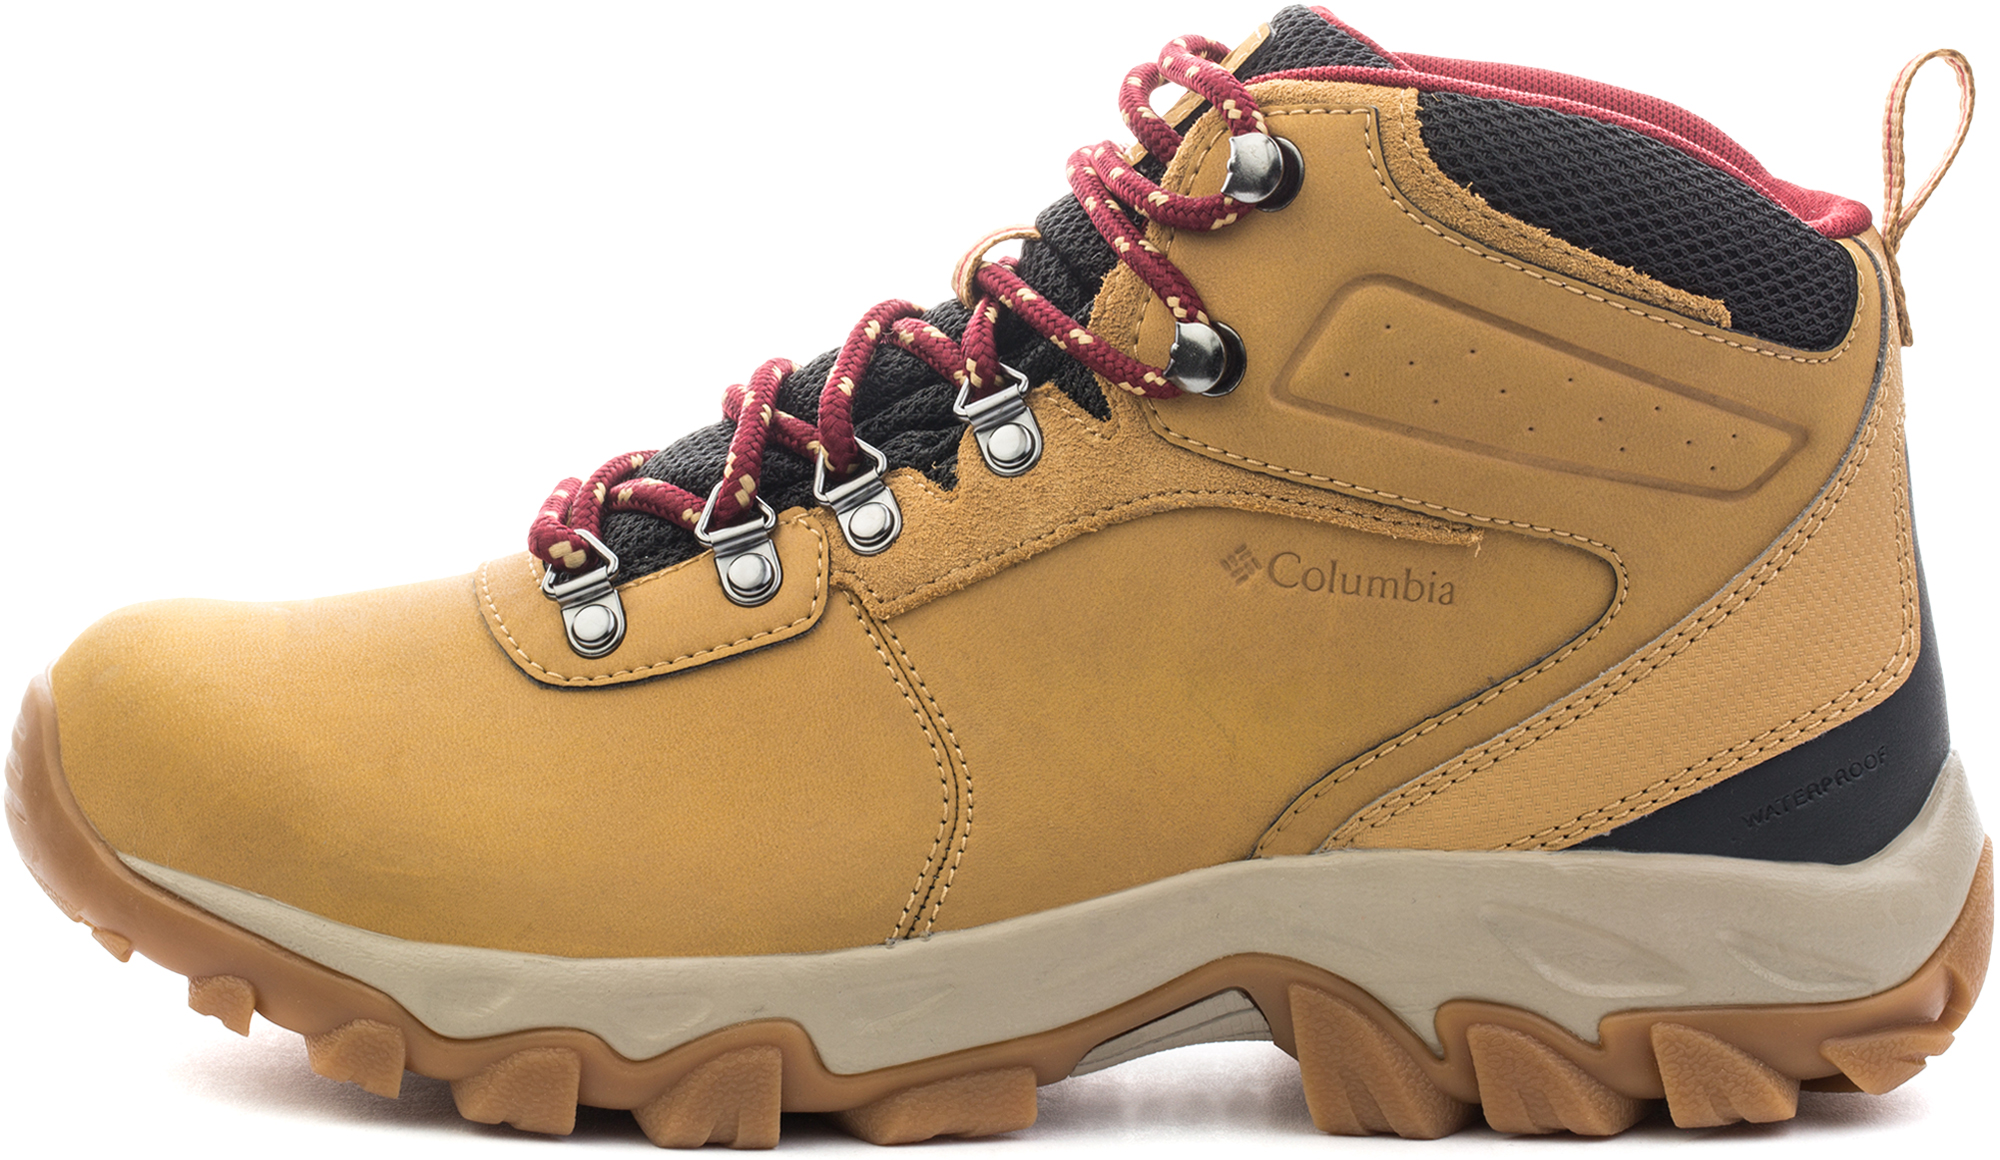 Columbia Ботинки мужские Columbia Newton Ridge Plus II Waterproof, размер 45 ridge gourd seed quality